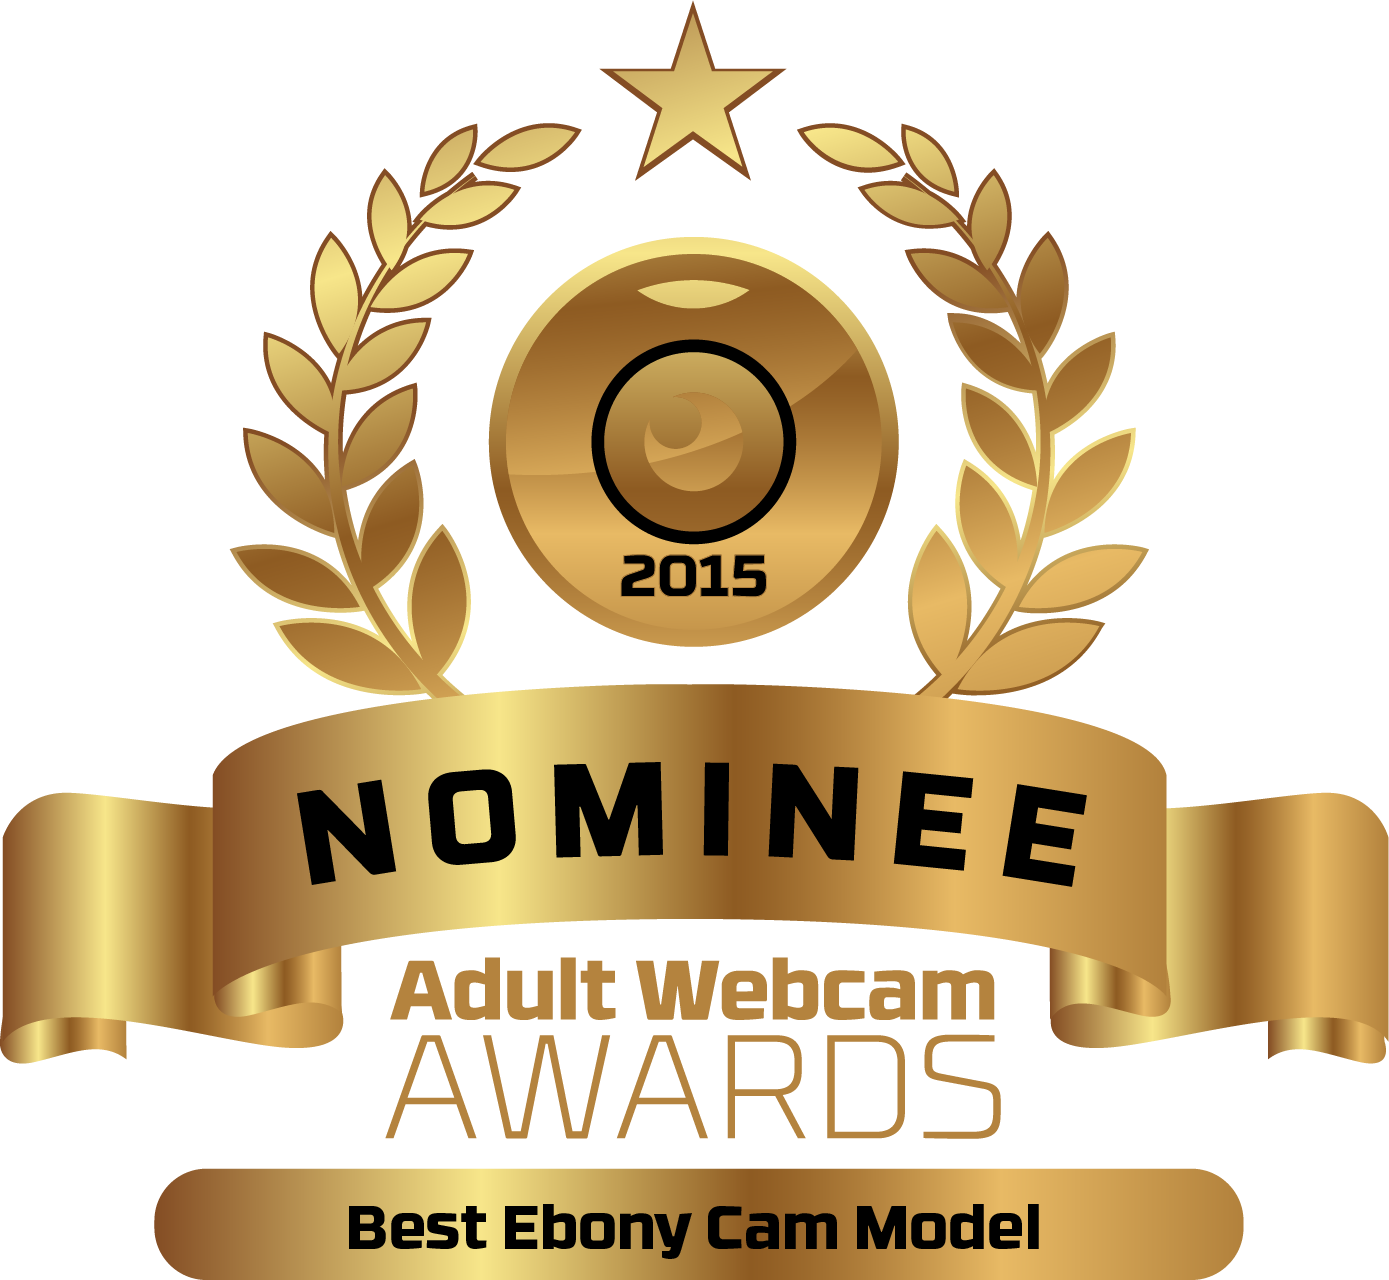 Nominee Best Ebony Cam Model